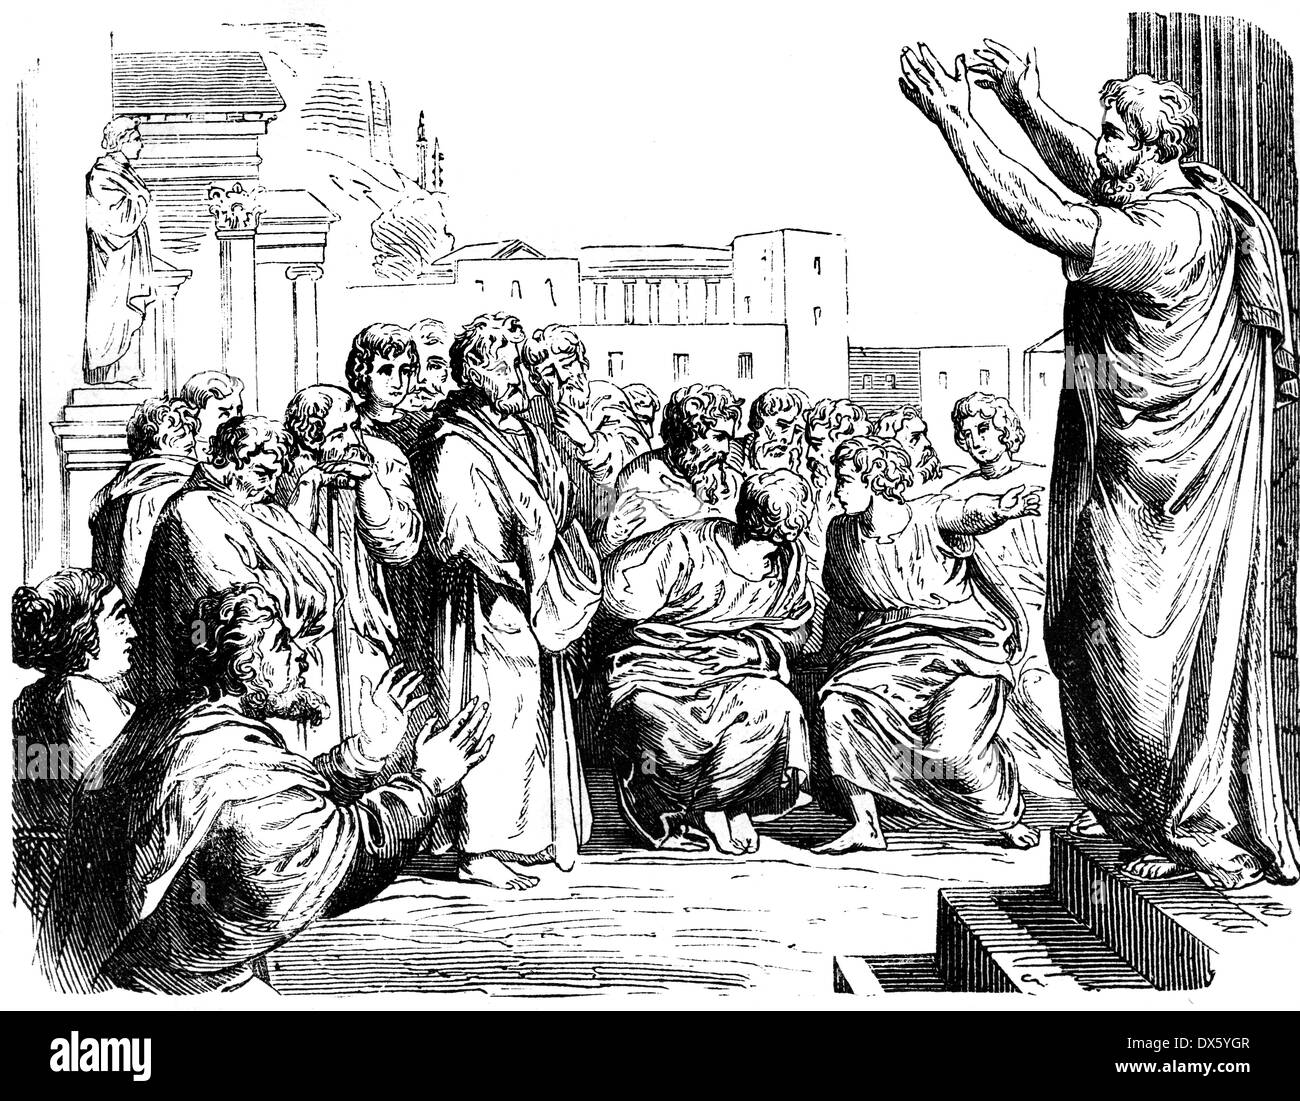 alexander the great speech